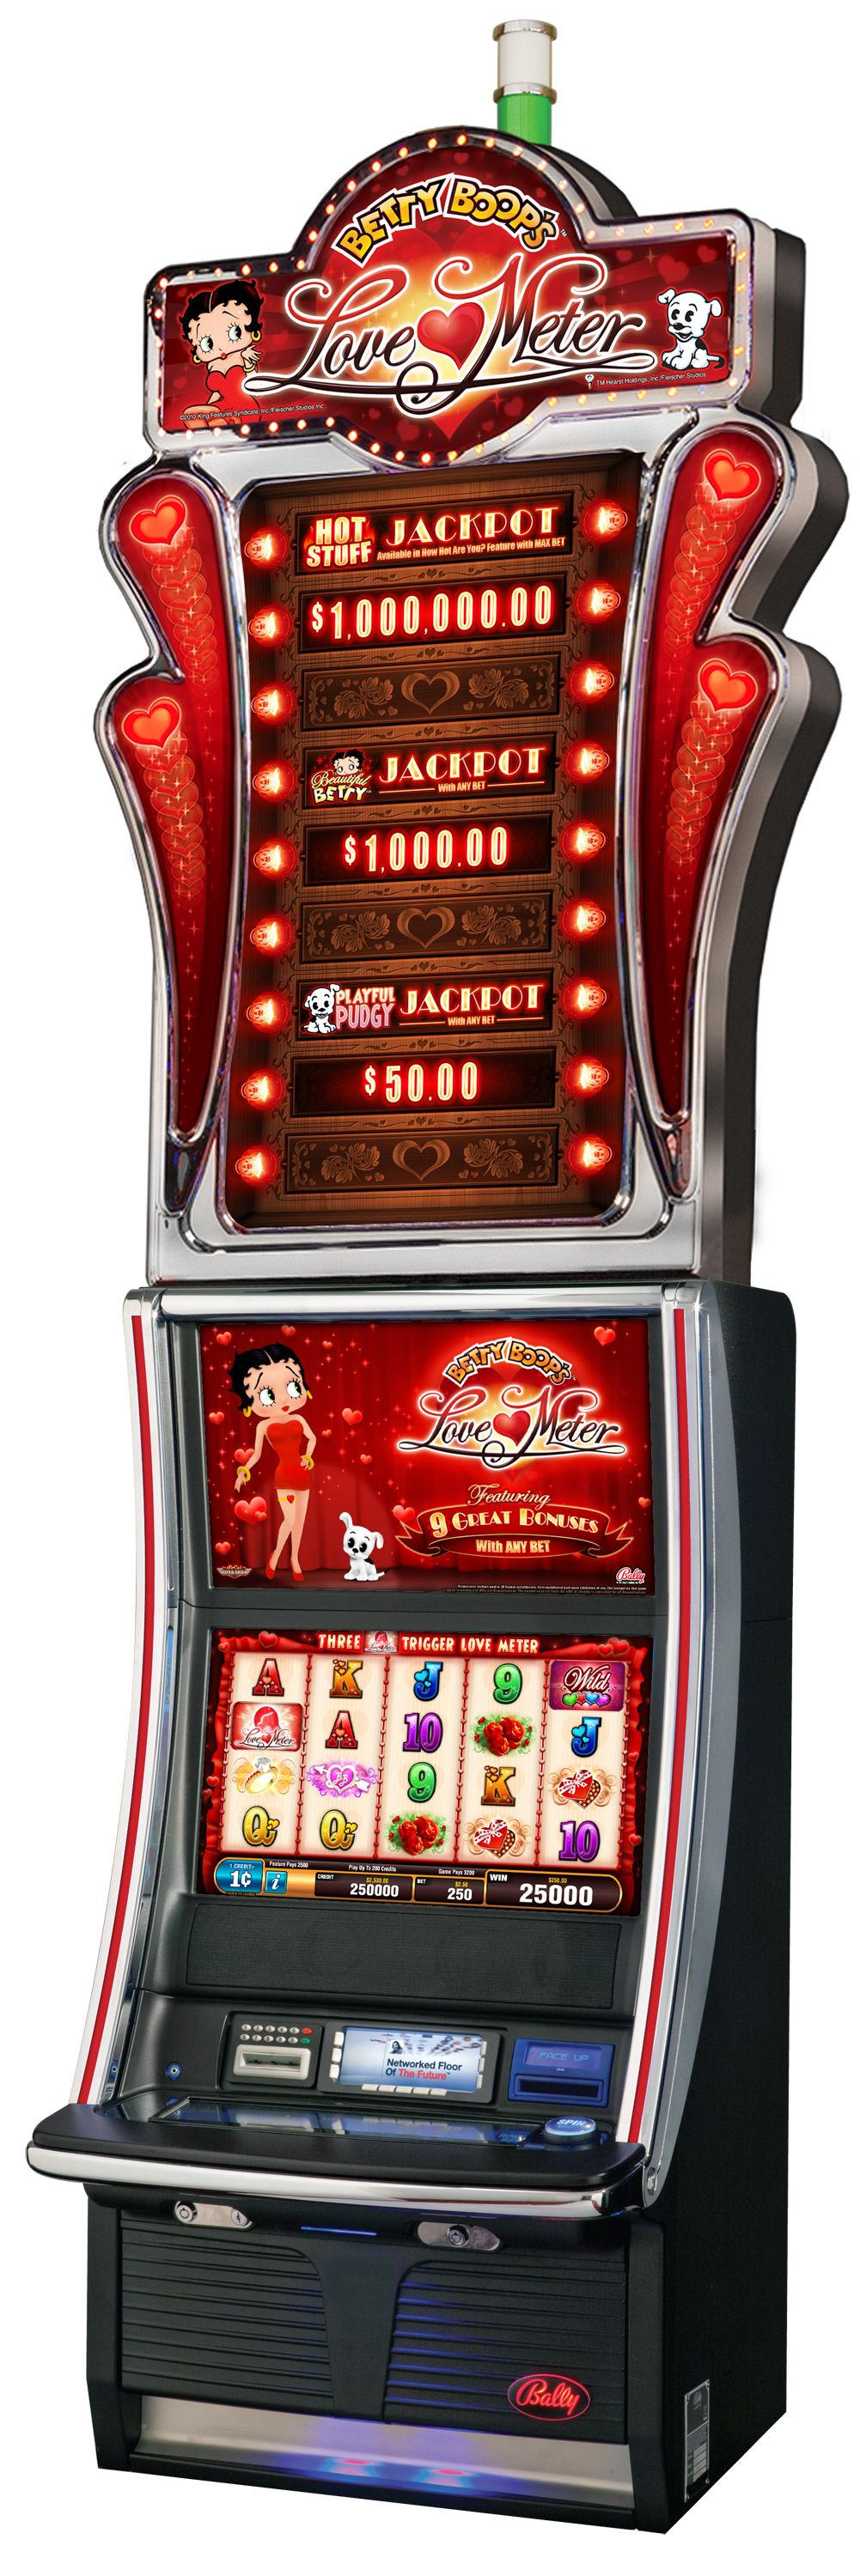 New Betty Boop Slots Game Available in Jackpot Party Casino App